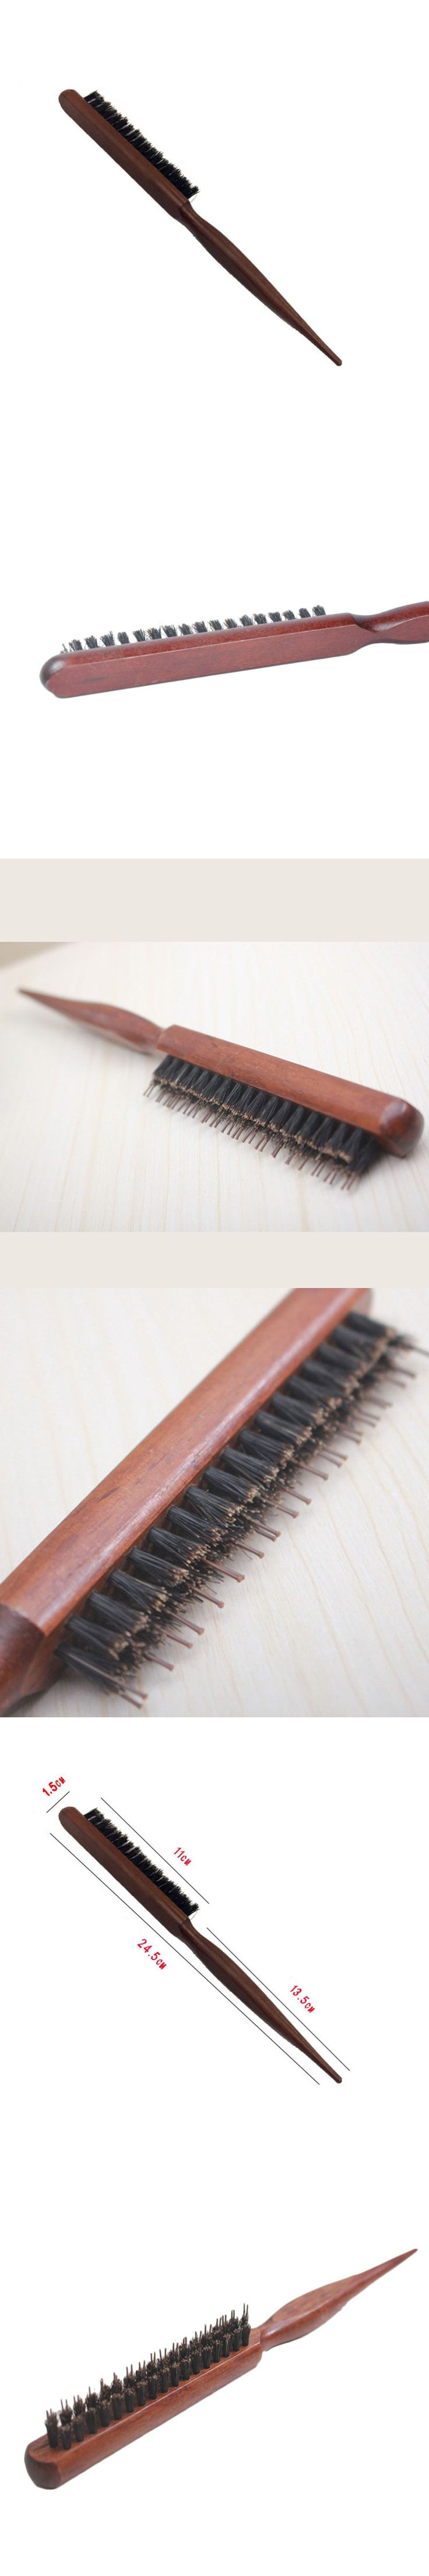 Superior Hair Styling Tools For Women Natural Bristle Comb Brush Fluffy Wood Handle Salon Hairdressing Barber Tool